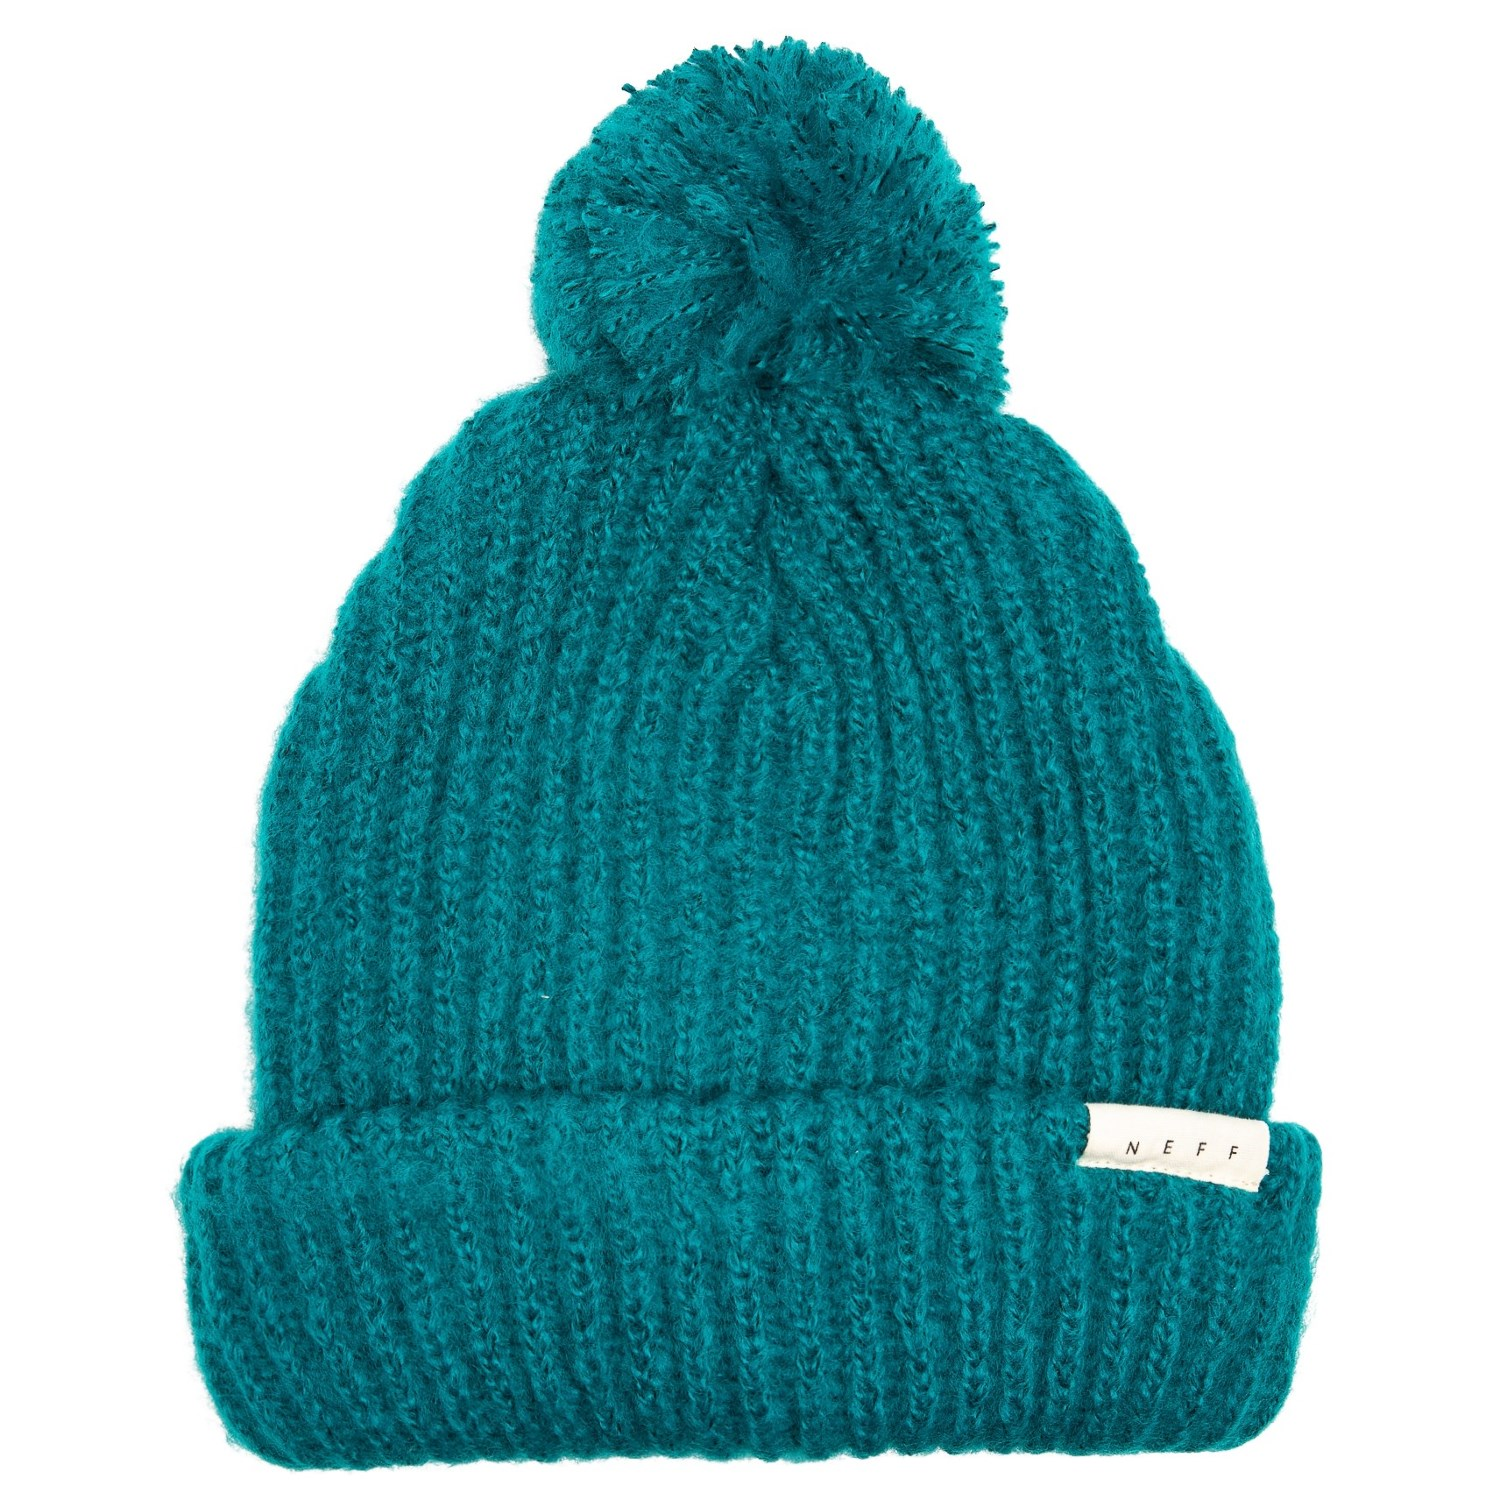 ad56ddde543 Neff muffin beanie with pom for women in teal jpg 1500x1500 Pom beanies neff